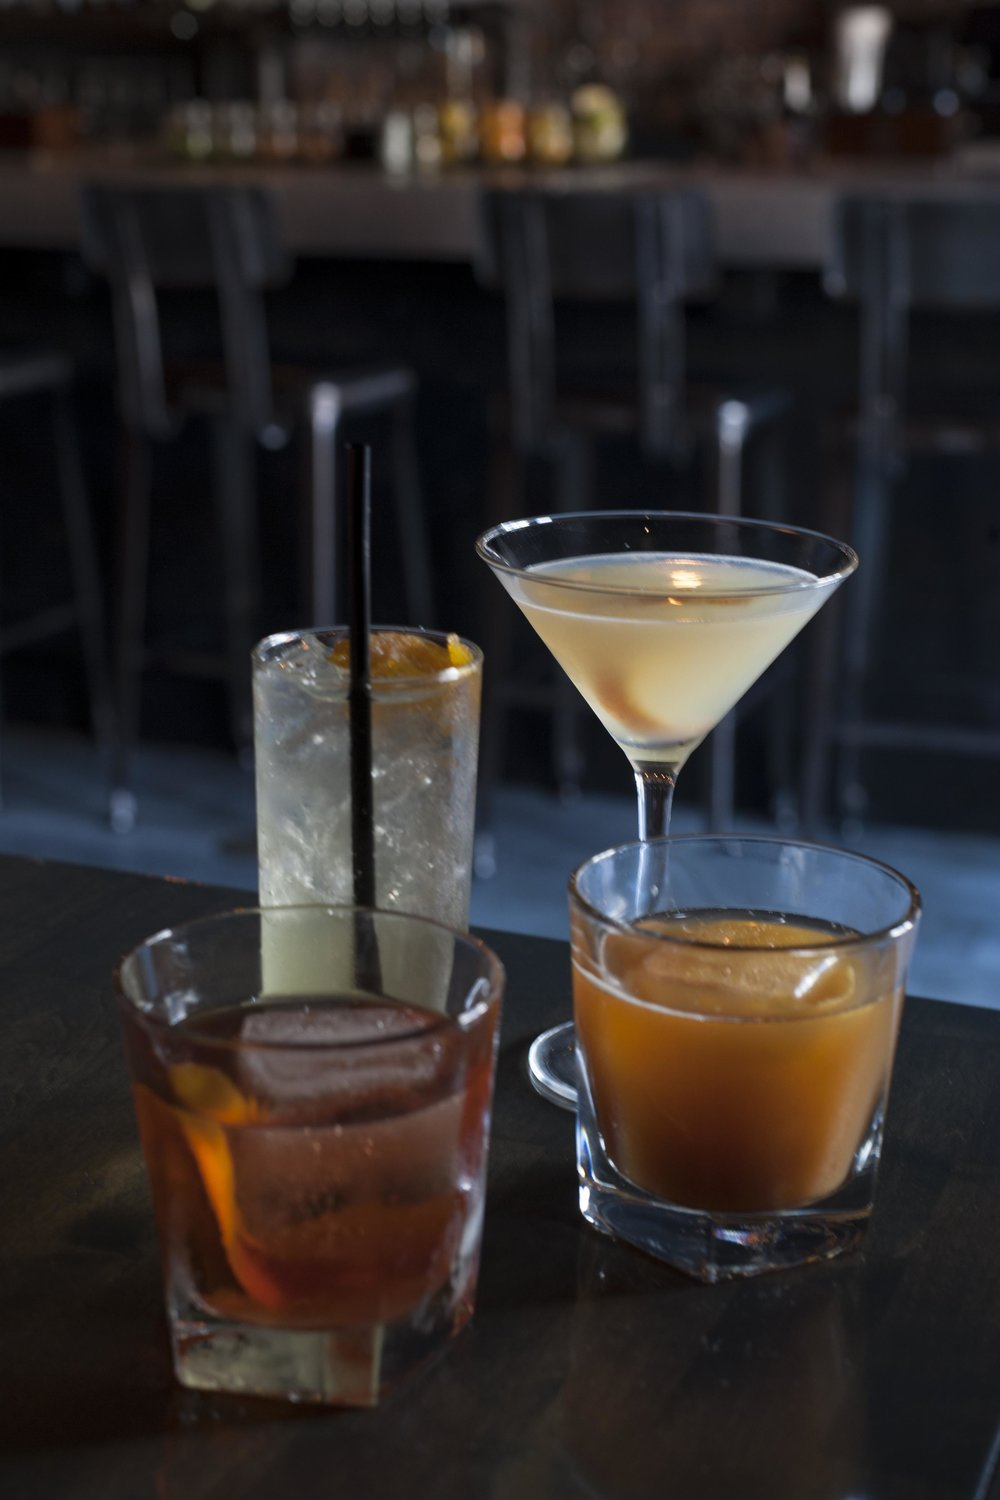 Pictured are some of Old Fields cocktails', the summery Orange South Side (back-left) next to the Corpse Reviver II. In the front row, from left, are a classic New Orleans Sazerac and the Charleston Dragoon Punch.